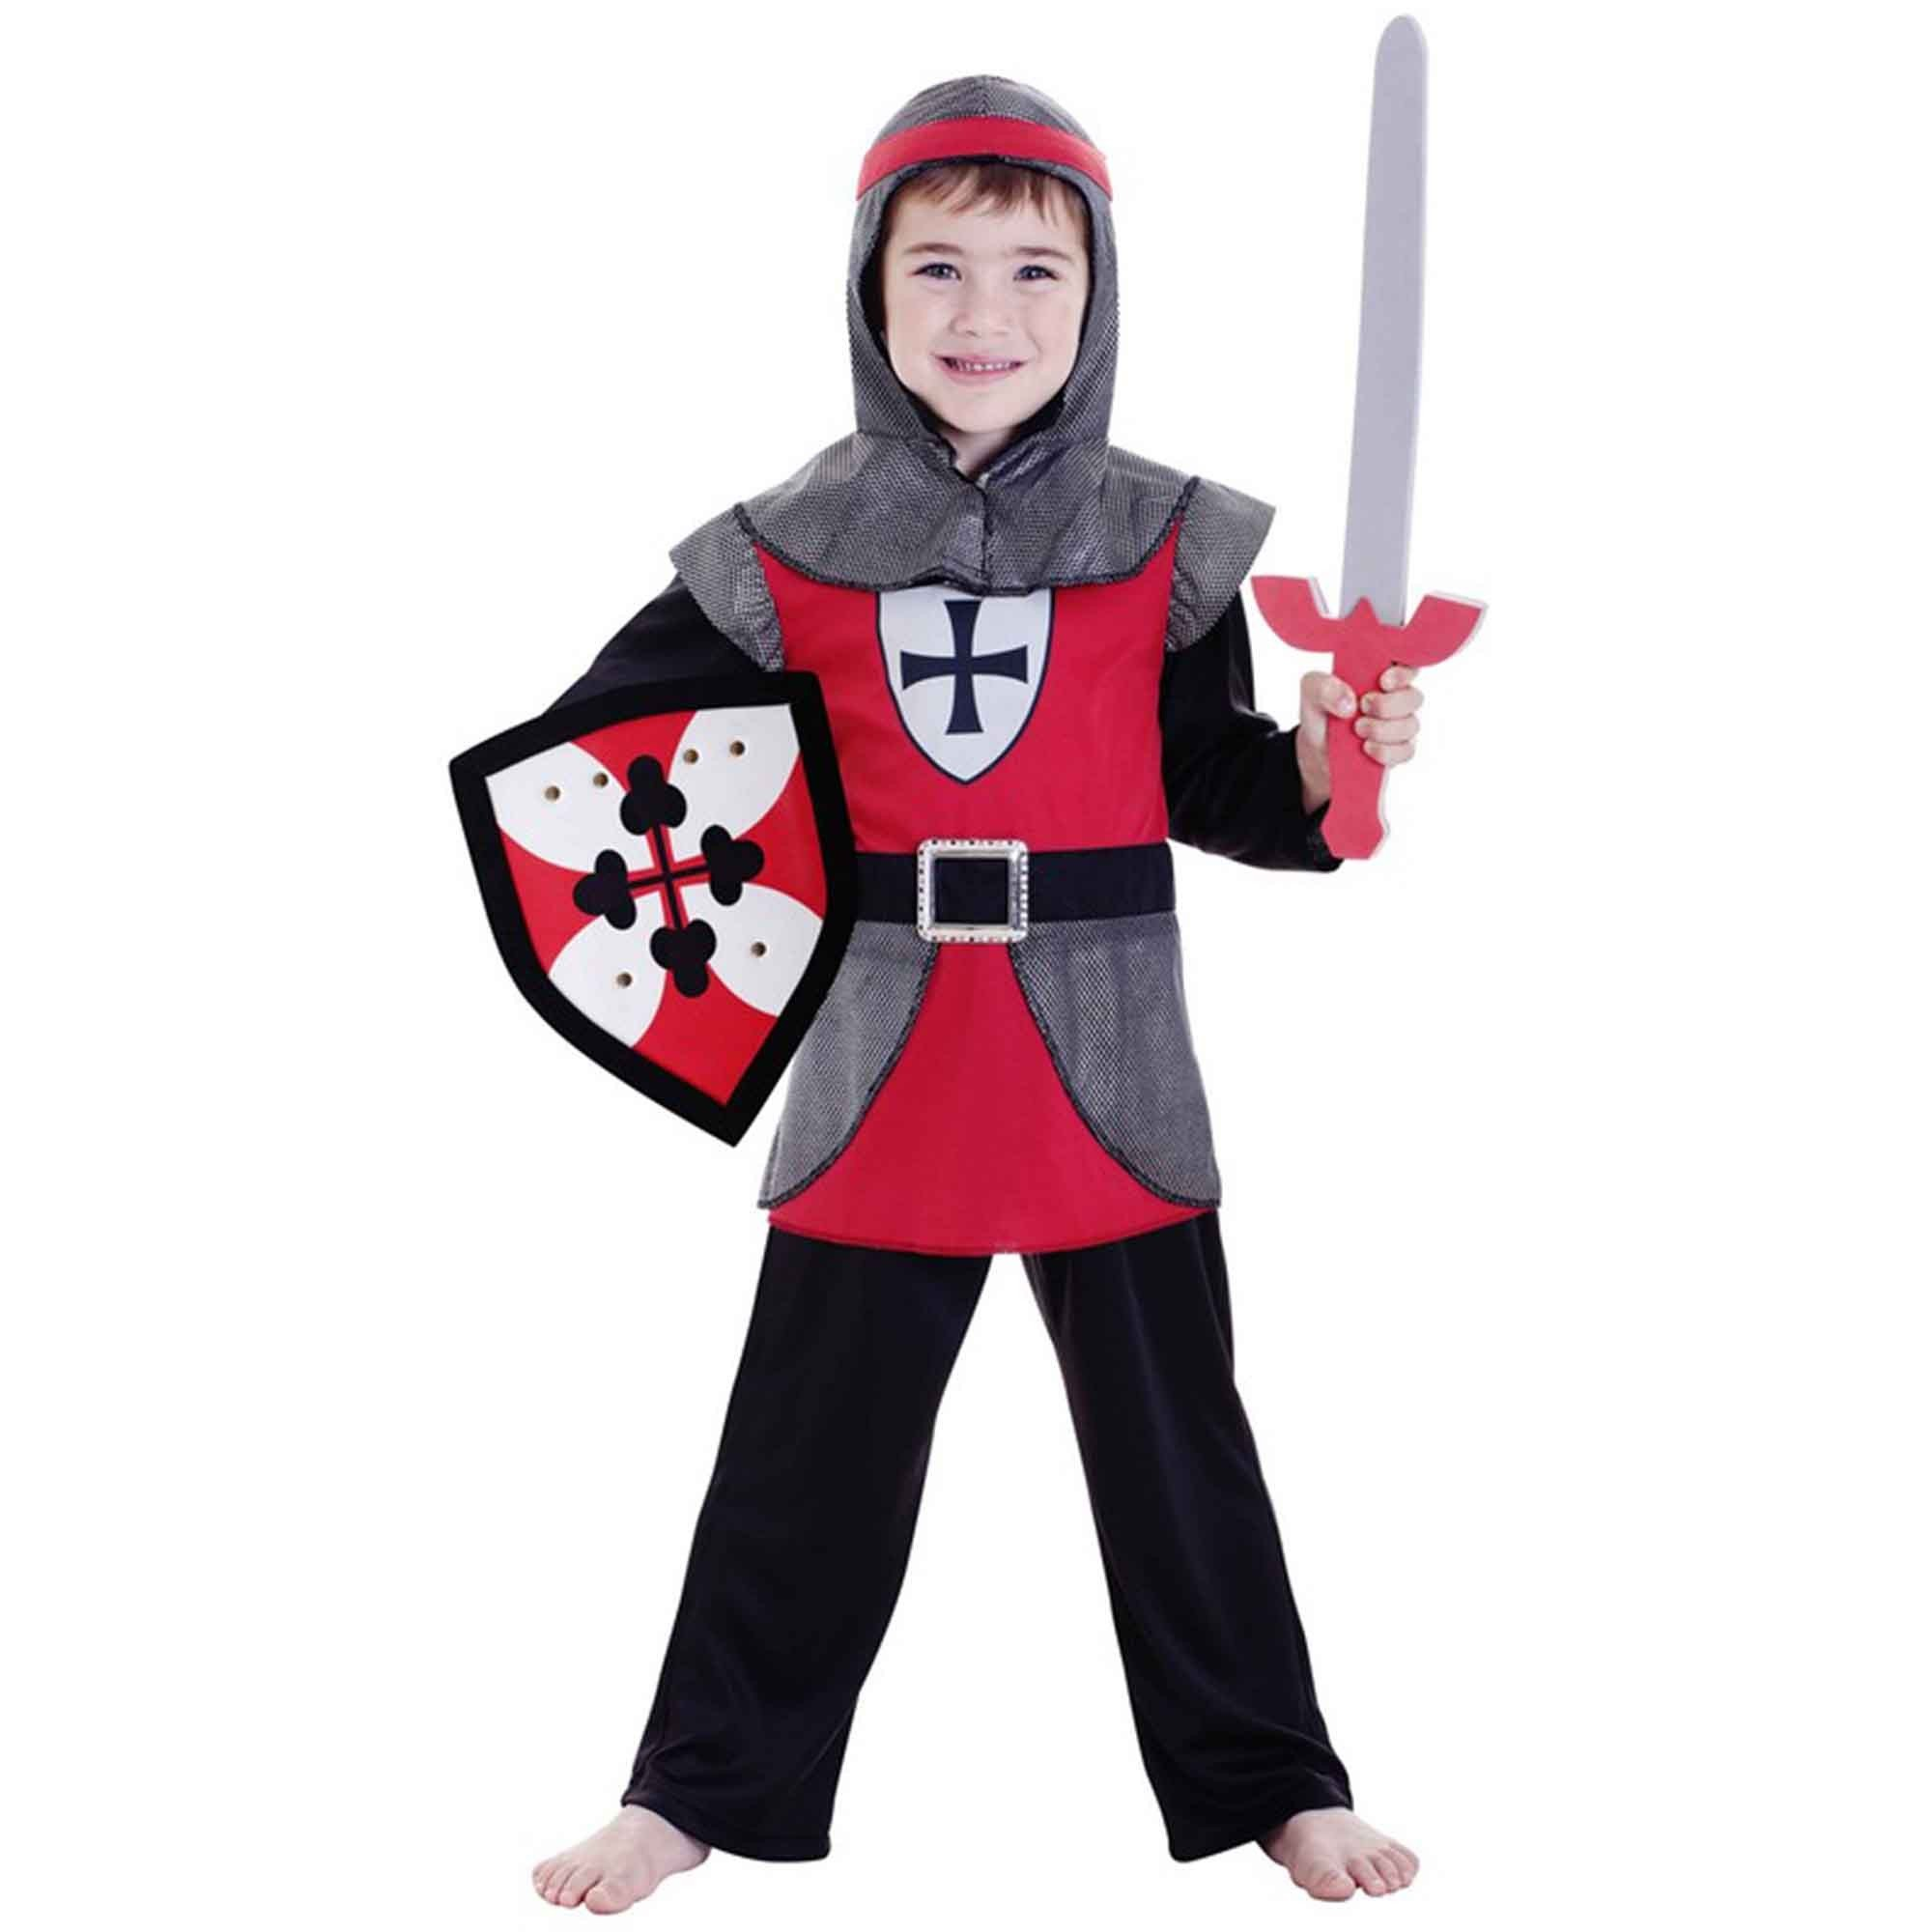 Deluxe Knight Boy Costume (Small) 3-5 yrs